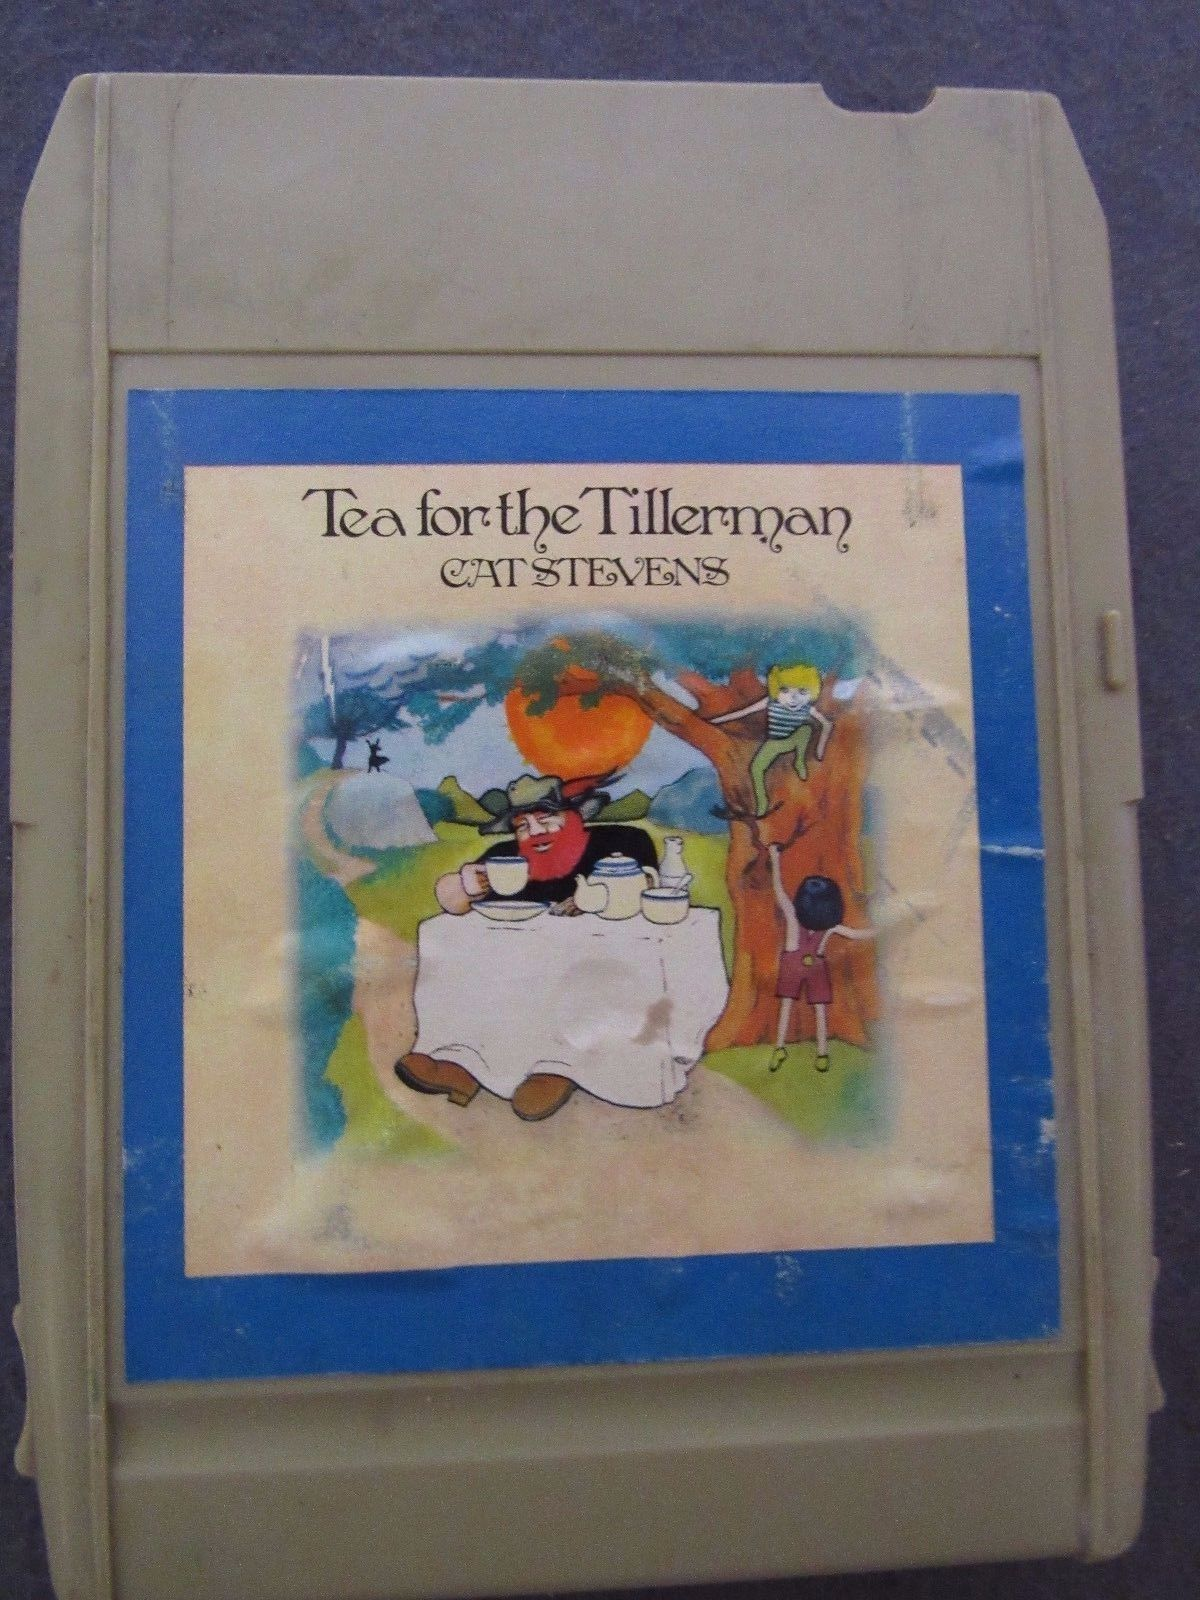 Vintage 8-Track Tea for the Tillerman Cat Stevens